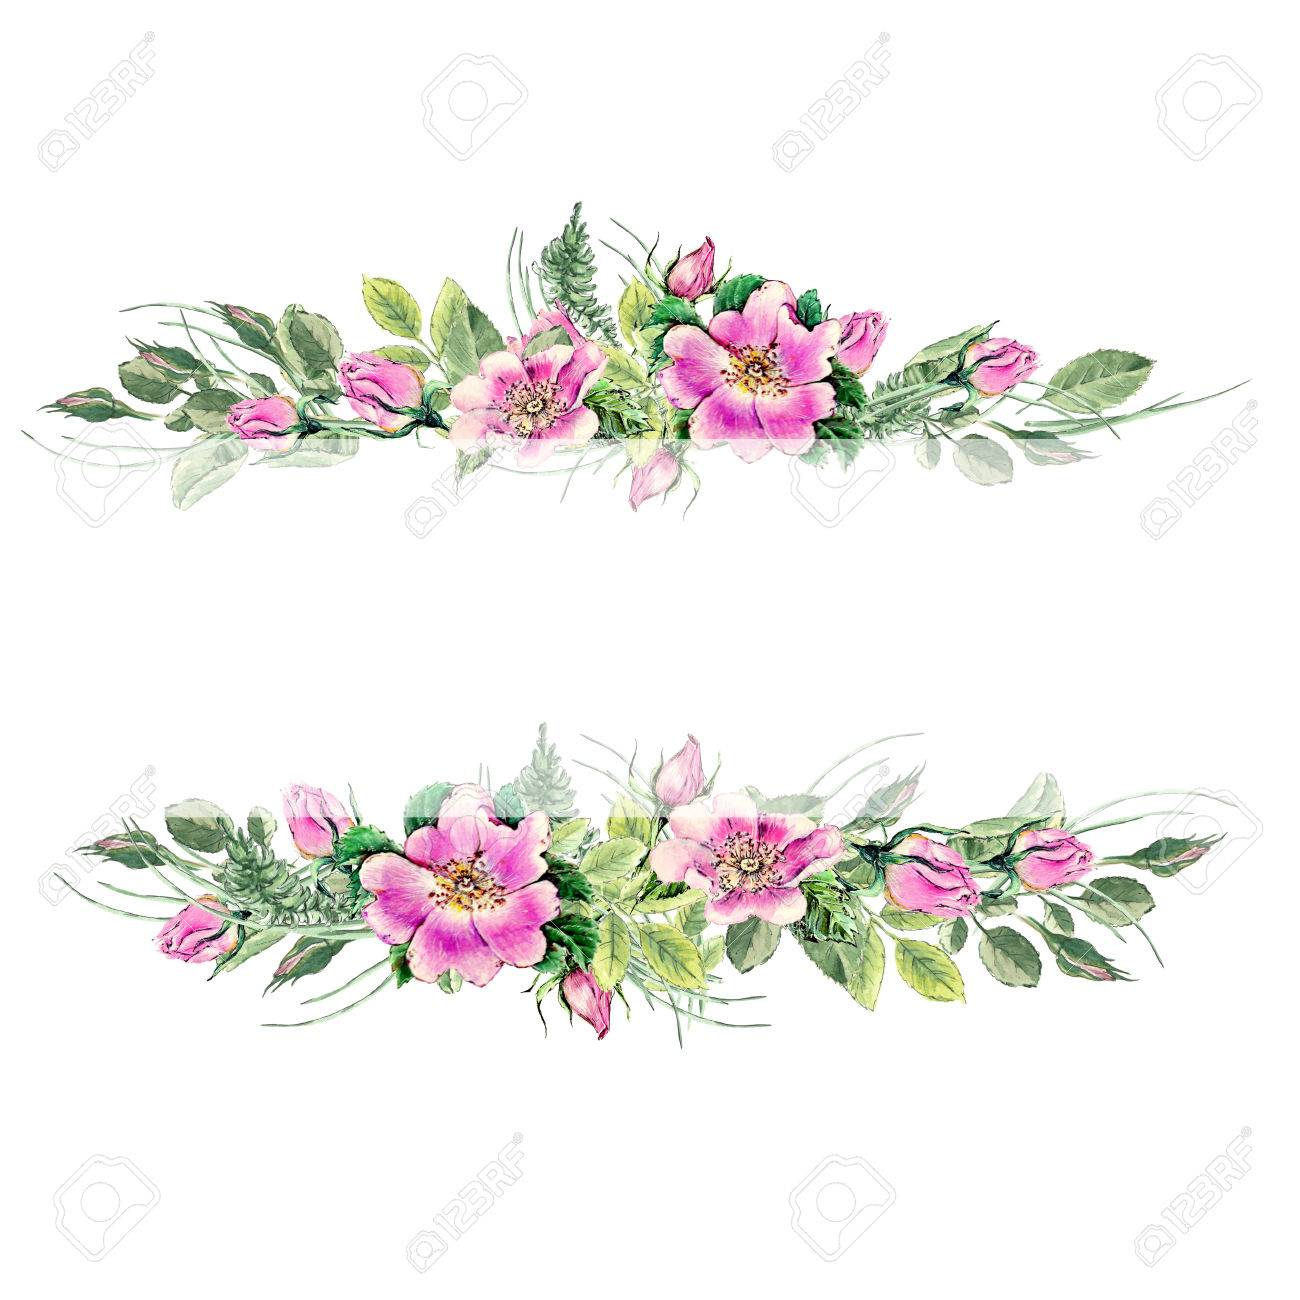 Banner with flowering pink roses names: dog rose, rosa canina,